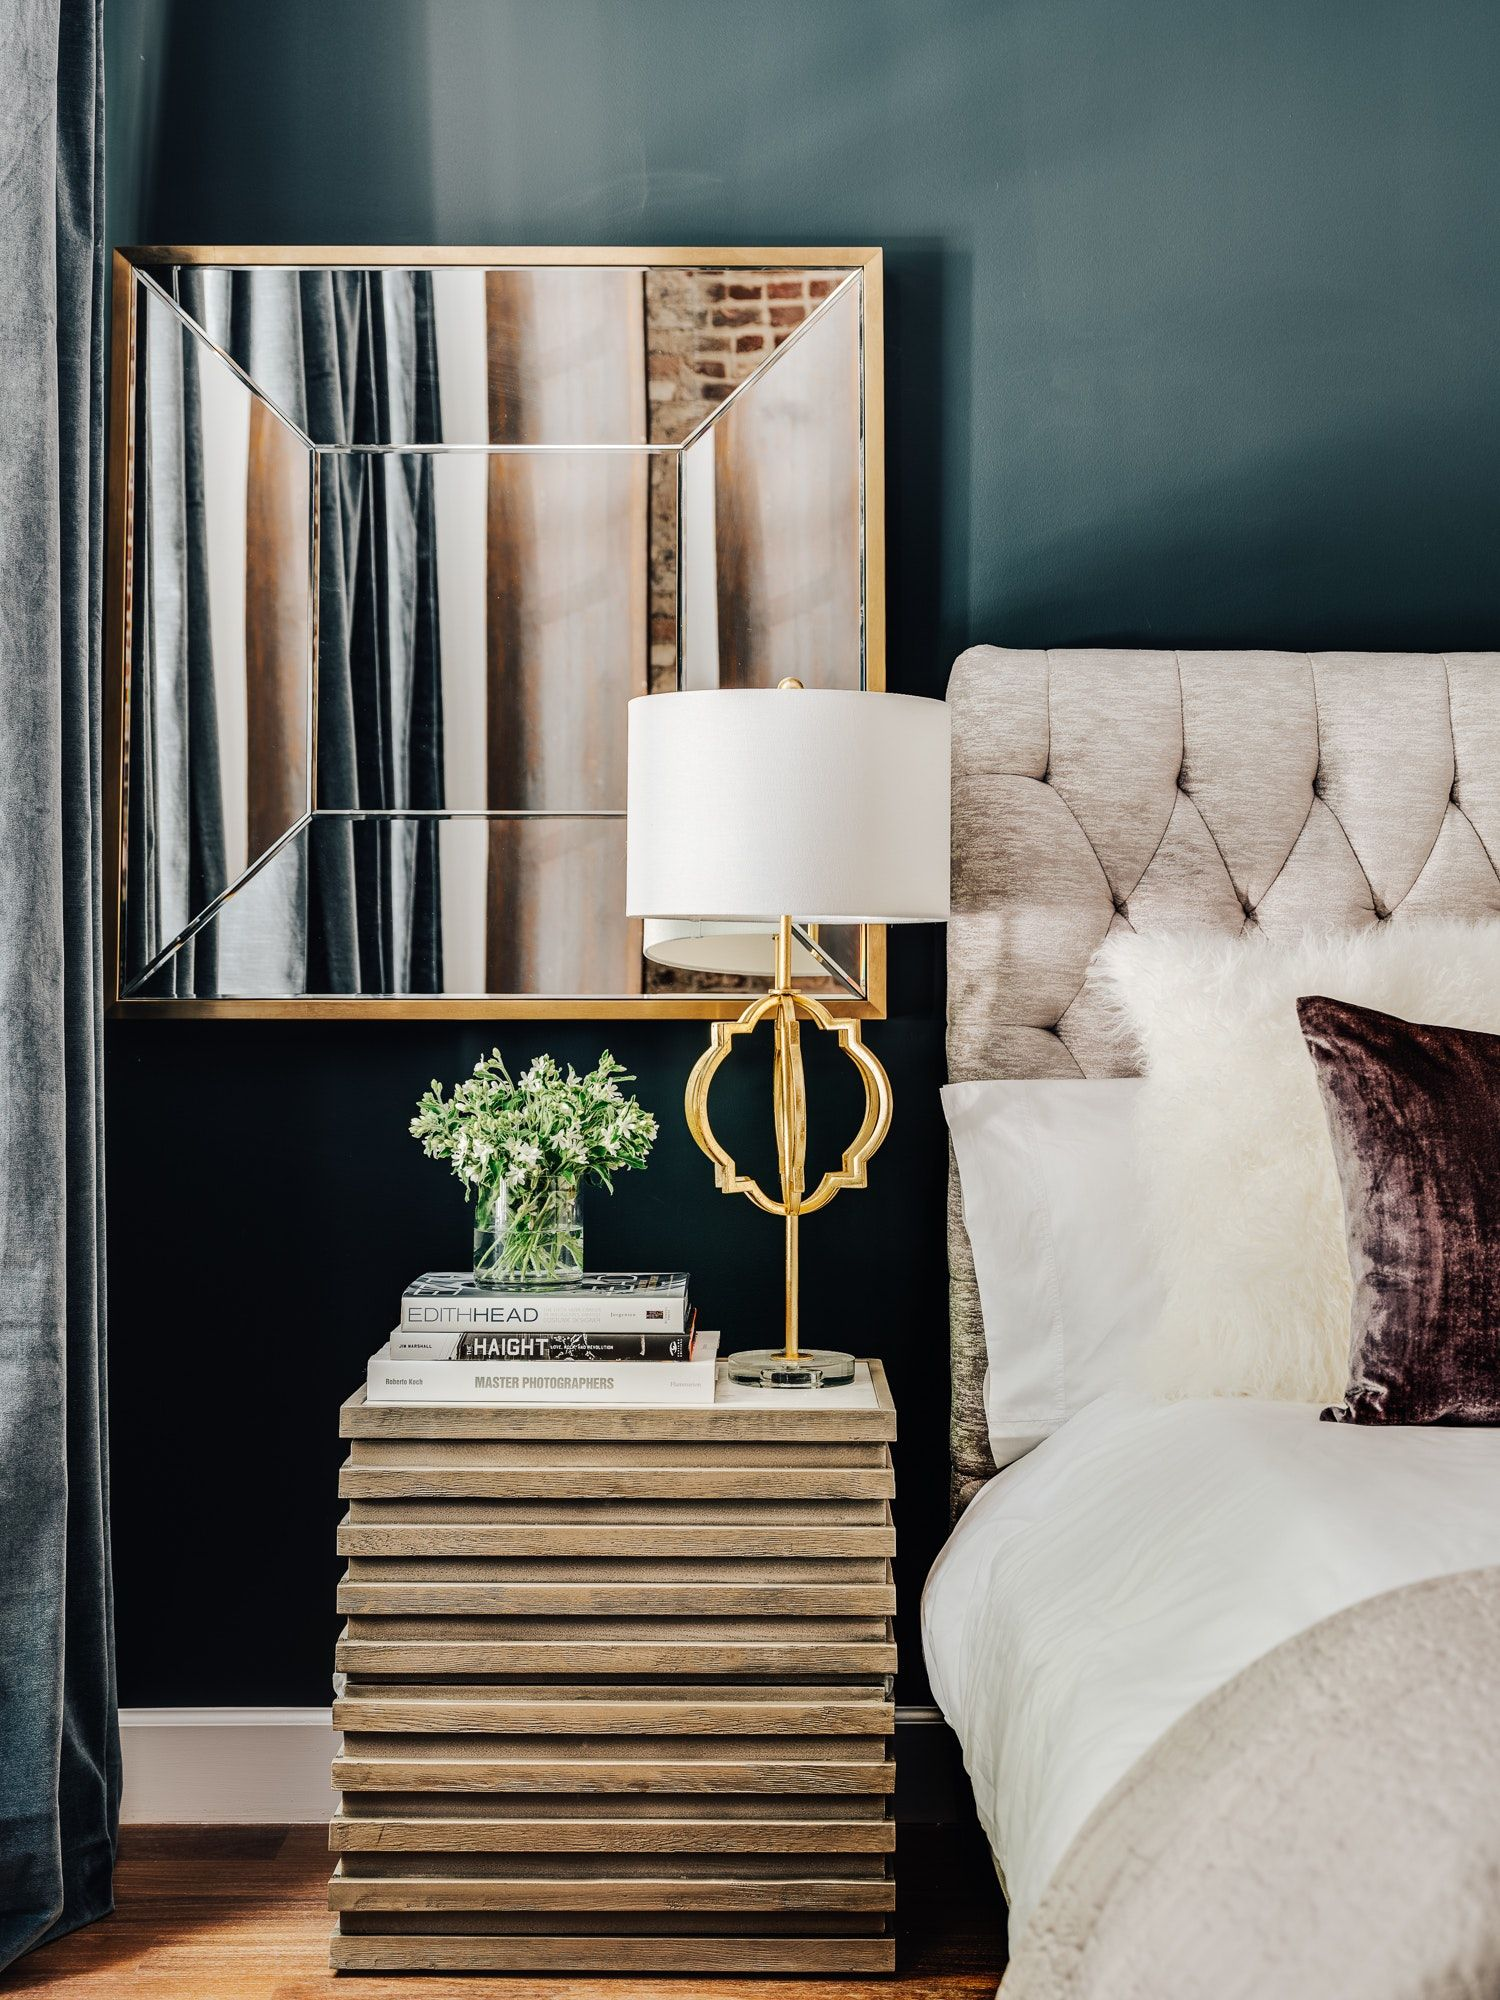 Light Grey Bedside Table: Blue Green Wall And Tufted Gray Headboard With Mirror